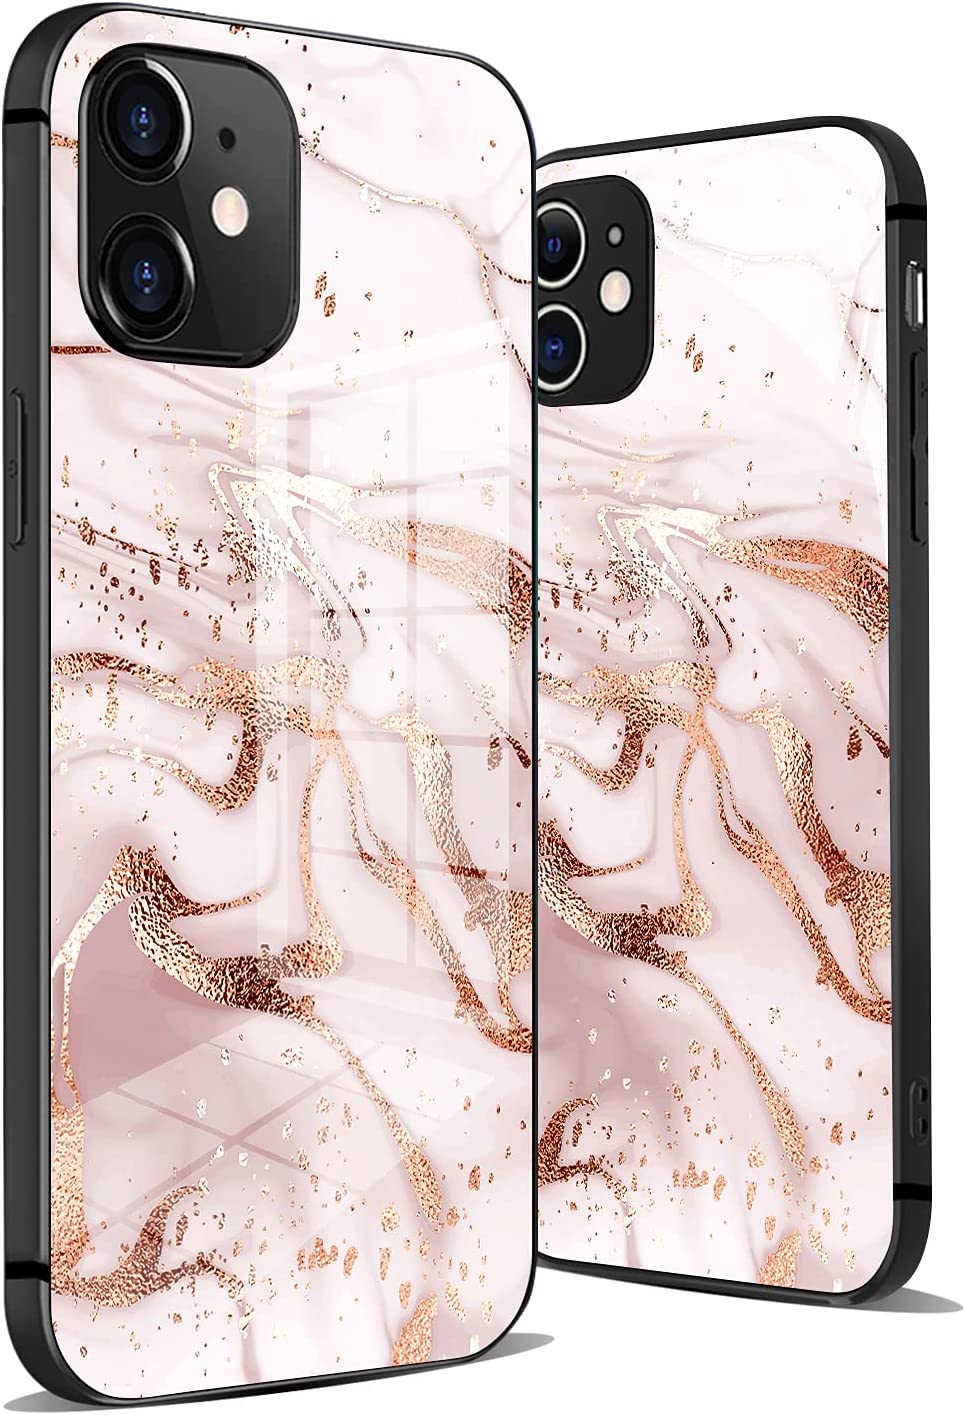 Hokafenle Rose Gold Marble iPhone 12 Mini Case for Women, Anti-Scratch Hard Glass Back with Design Print&Shockproof TPU Bumper&Anti-Slip Protect Cover for iPhone 12 Mini Case